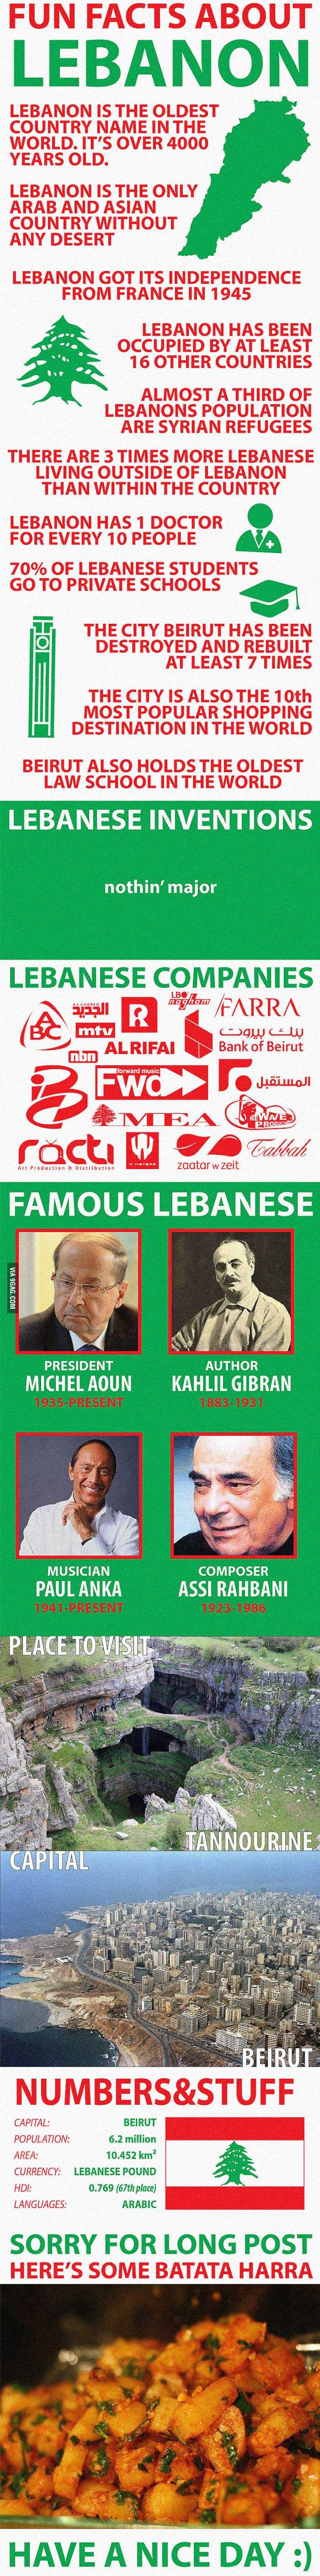 Fun Facts about Lebanon - 9GAG